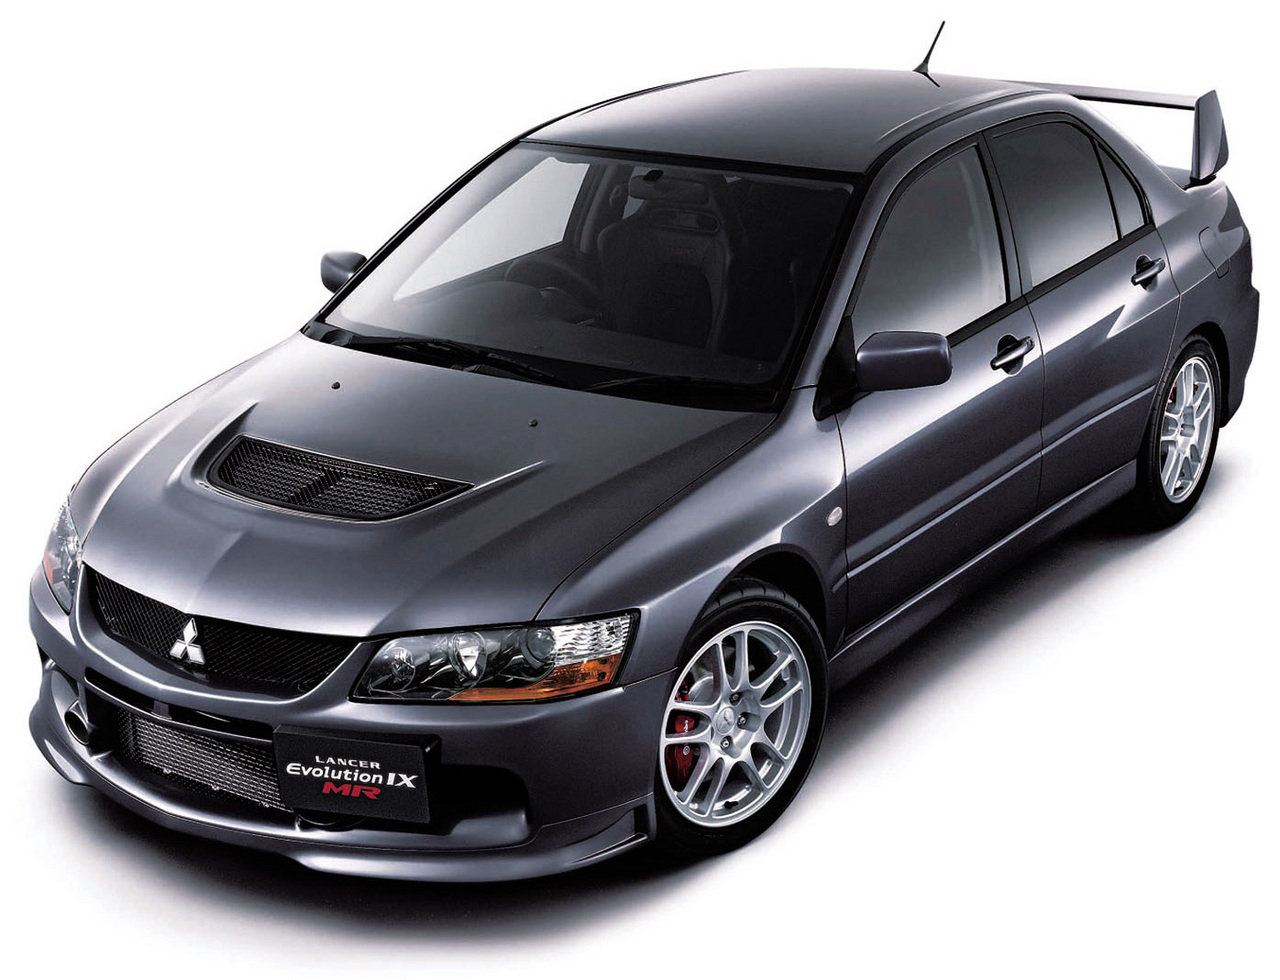 2007 mitsubishi lancer evolution ix mr and lancer evolution wagon mr picture 95892 car. Black Bedroom Furniture Sets. Home Design Ideas